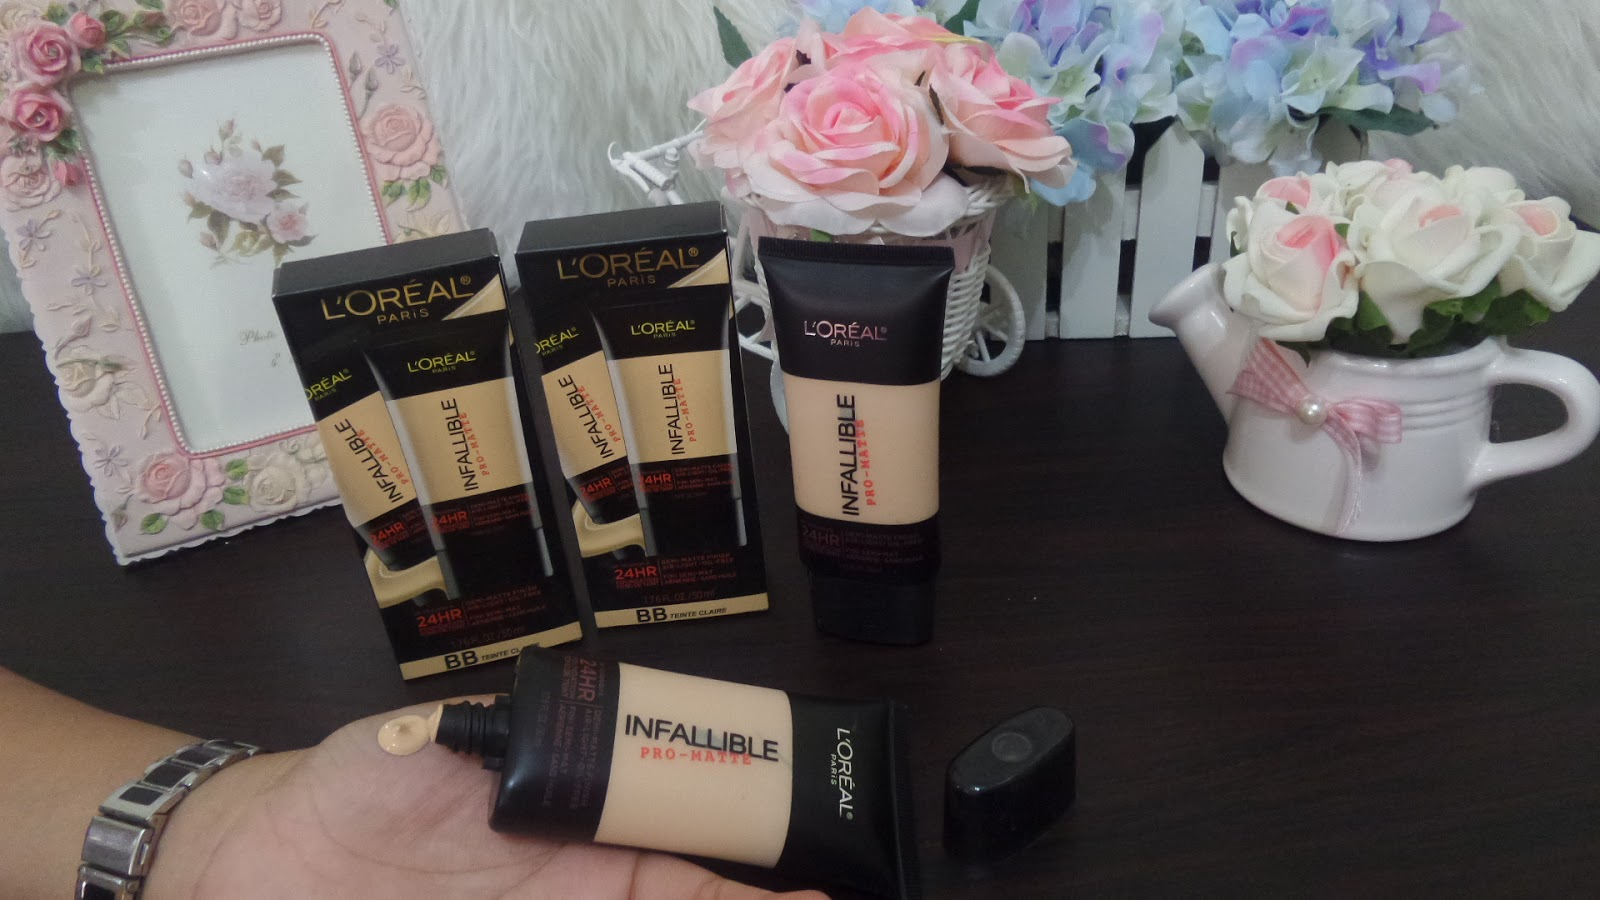 Fondation LOREAL PARIS INFALLIBLE PRO MATTE FOUNDATION